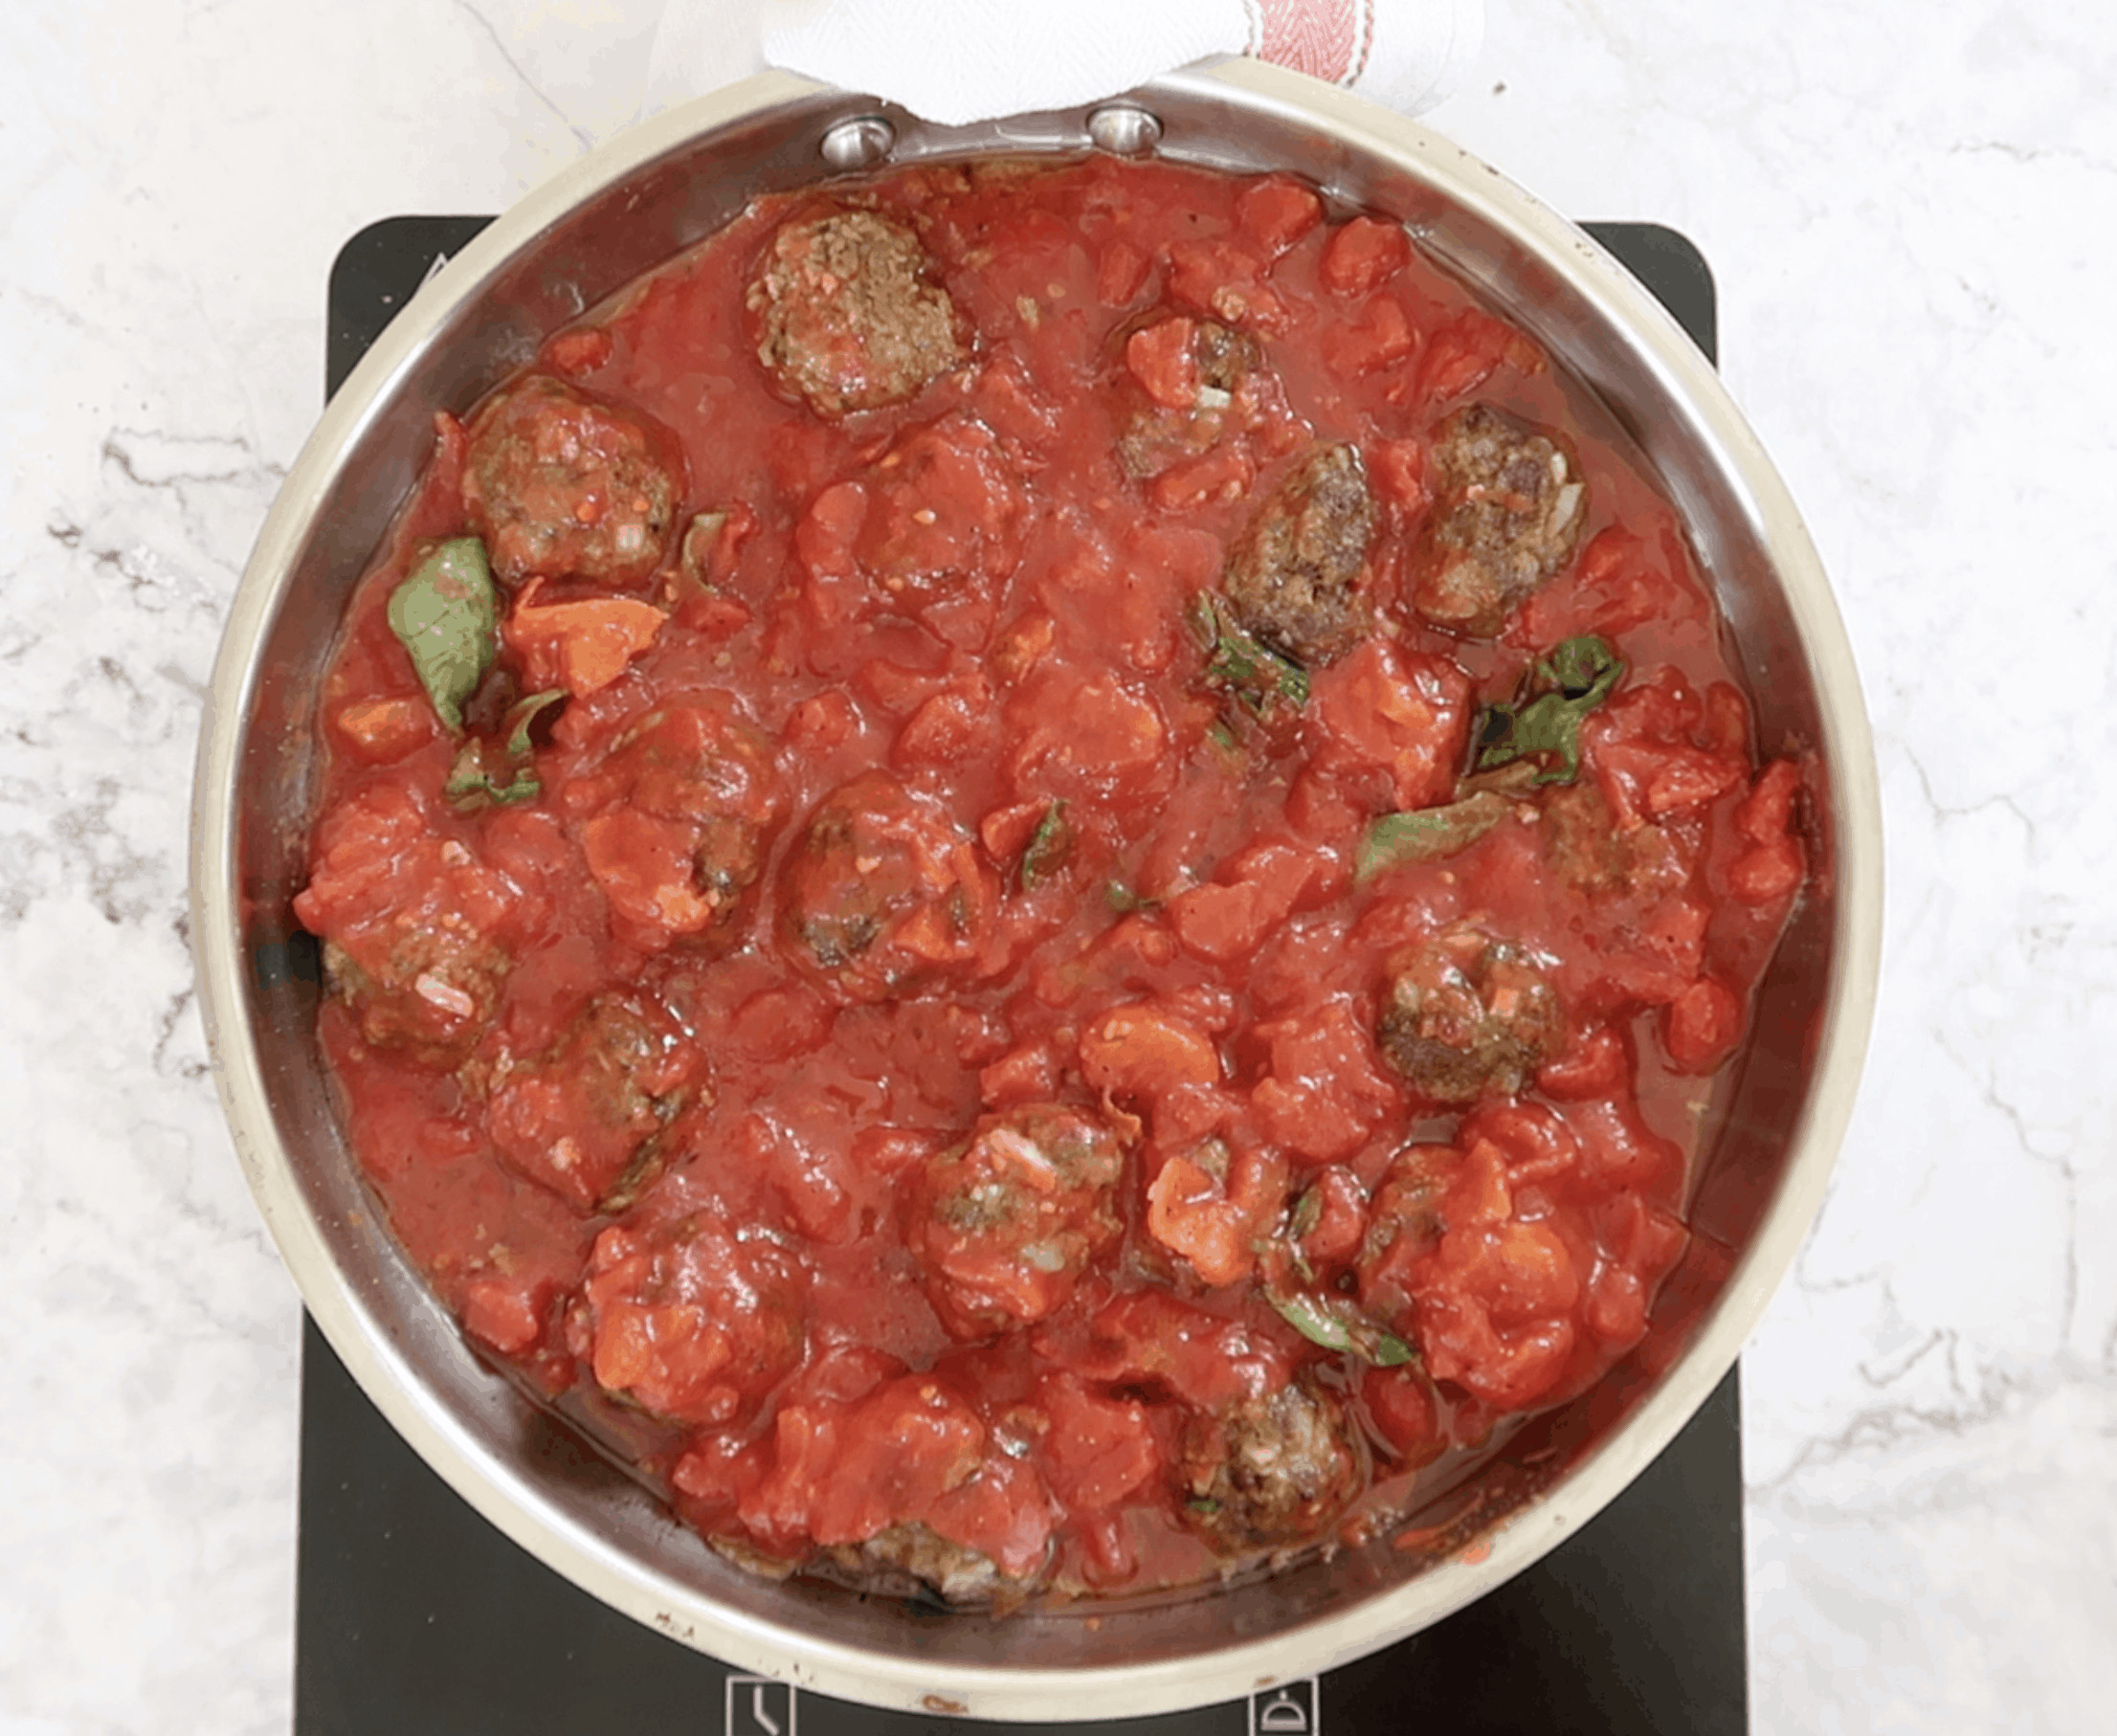 Italian Baked Meatballs with Tomato Sauce cooked in a silver frying pan